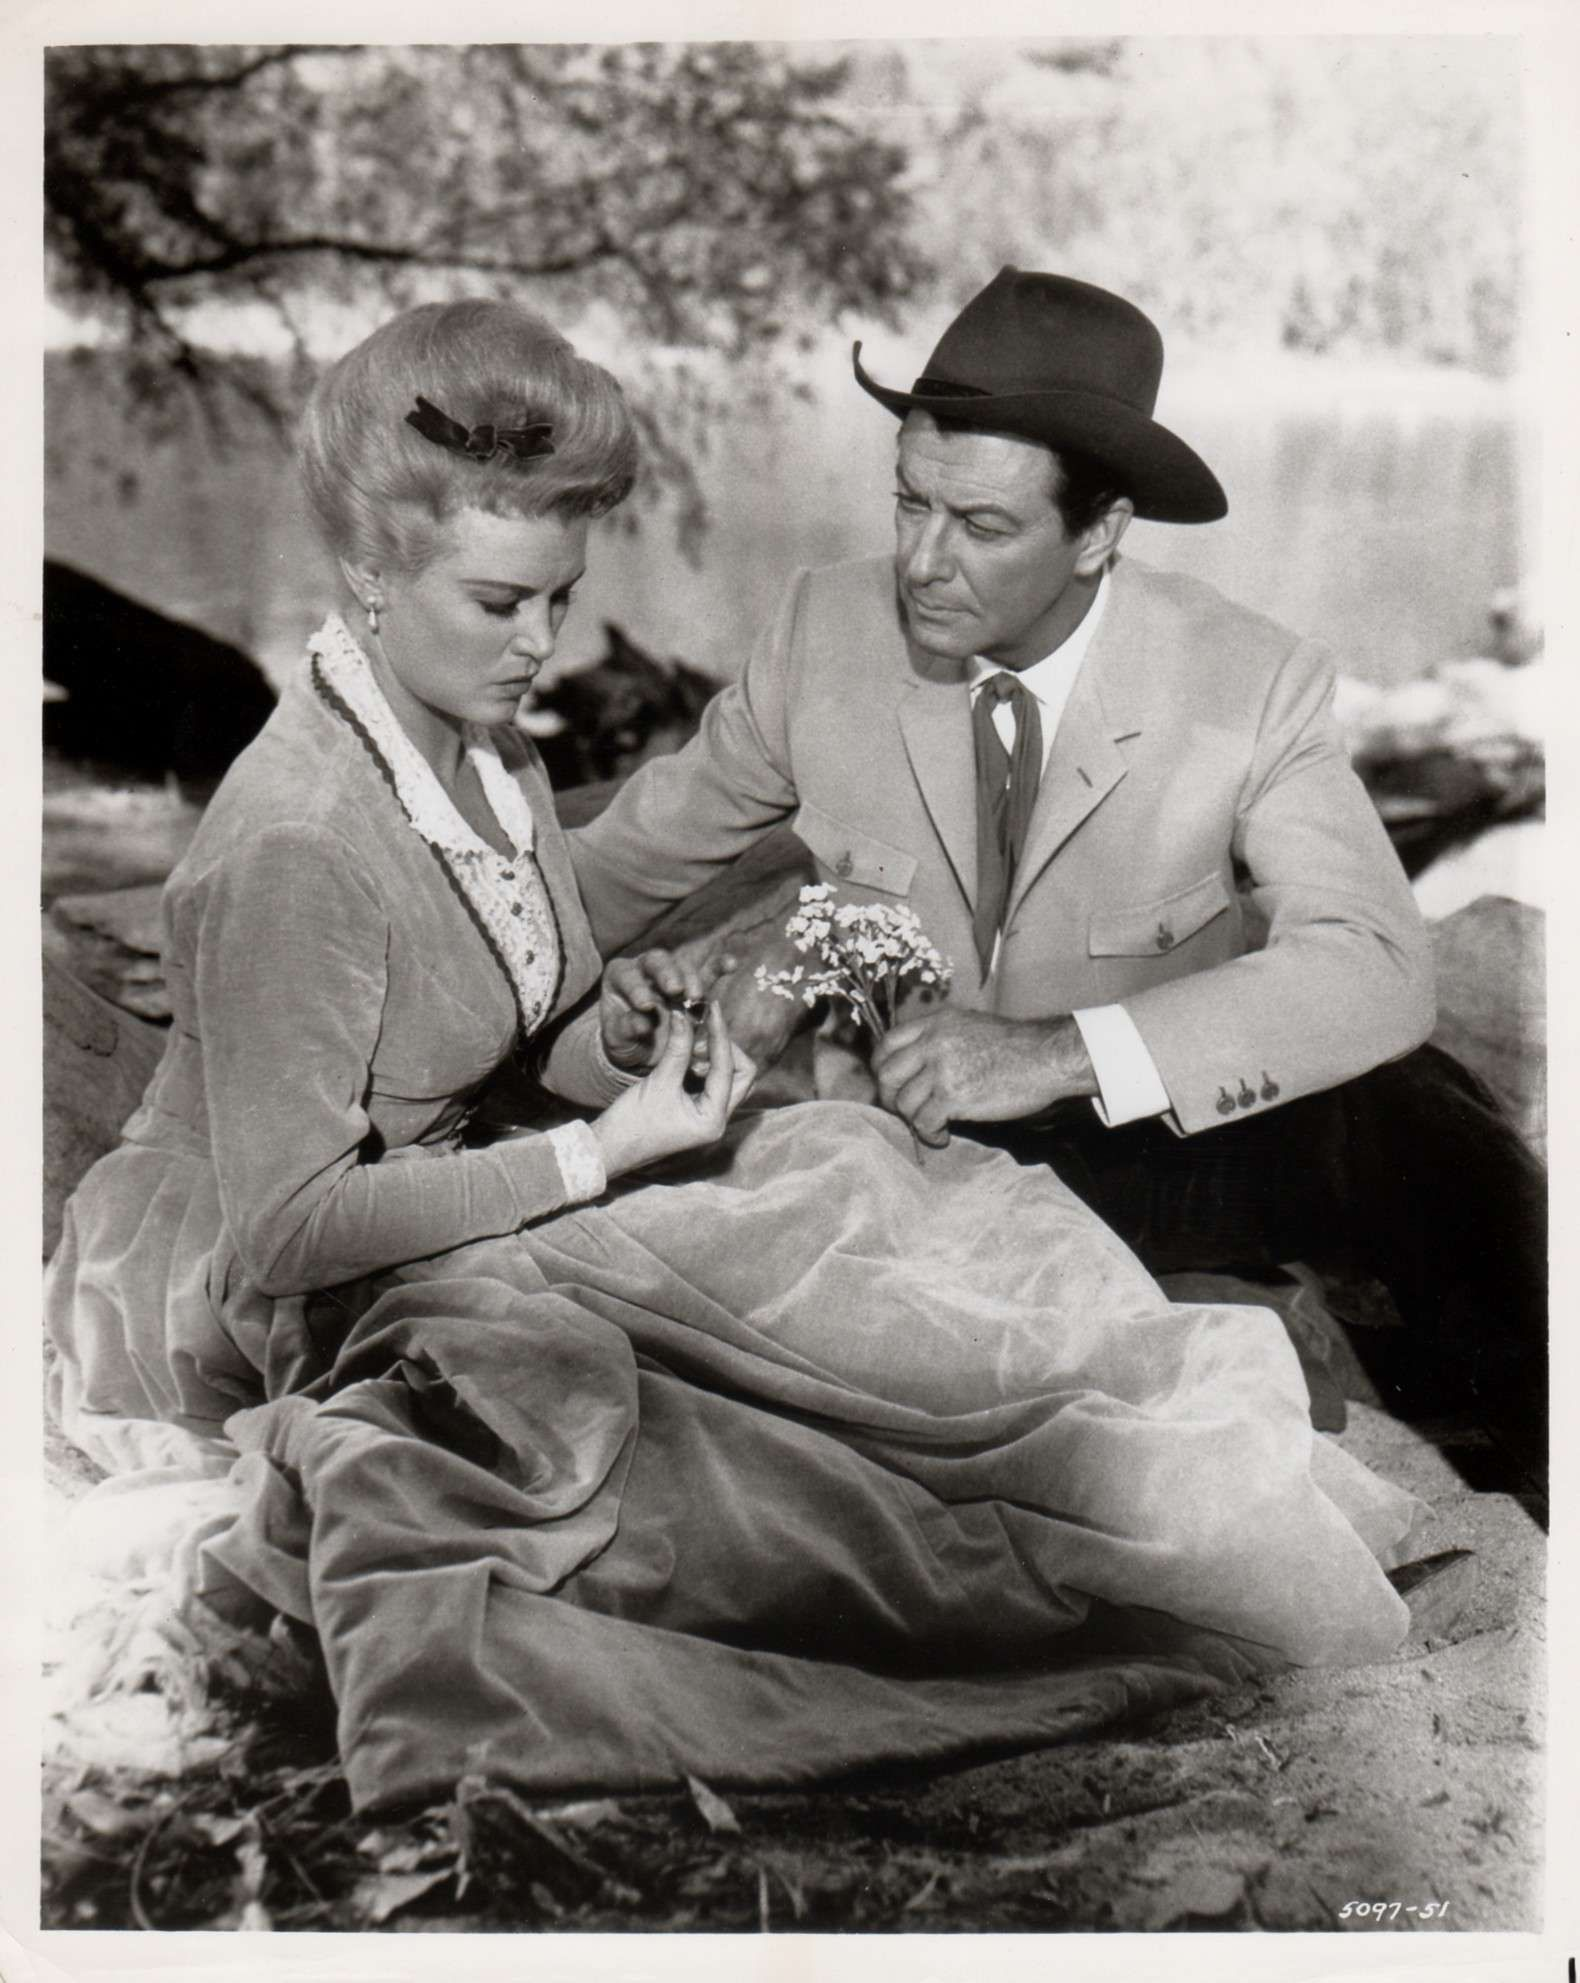 Robert Taylor and Joan Caulfield in Cattle King (1963)